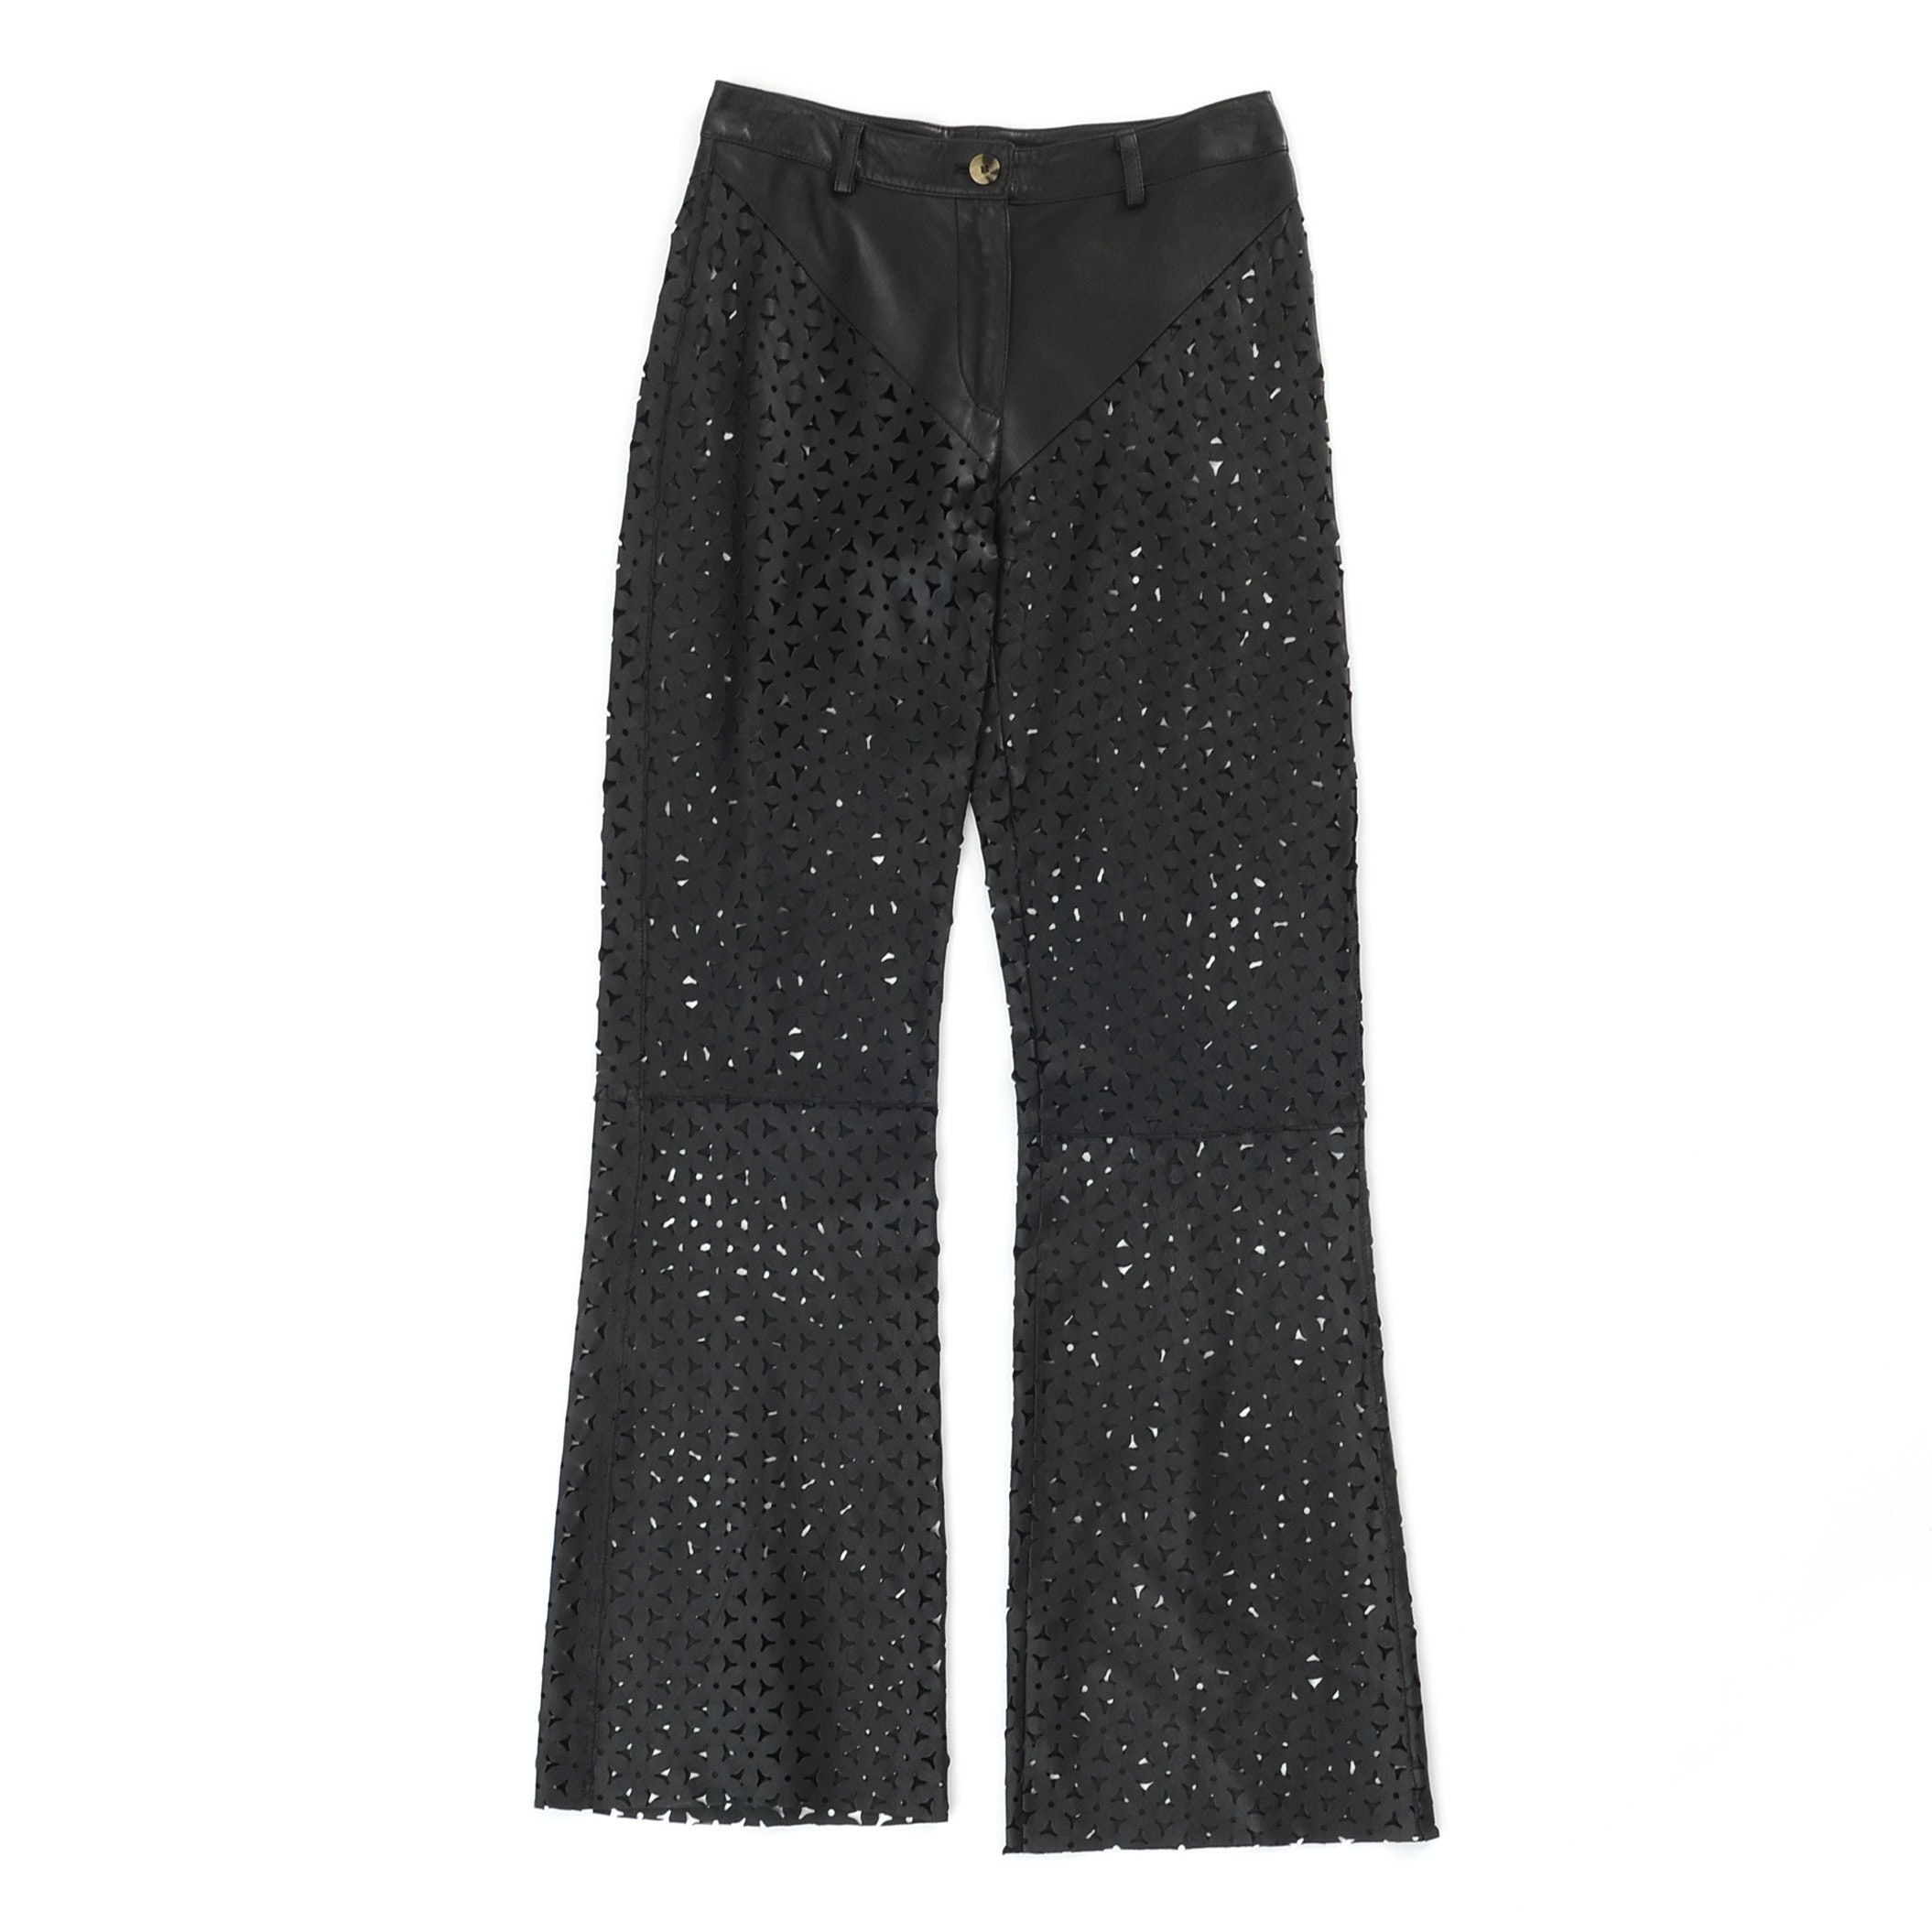 Black Laser Cut Lambskin Leather Pants